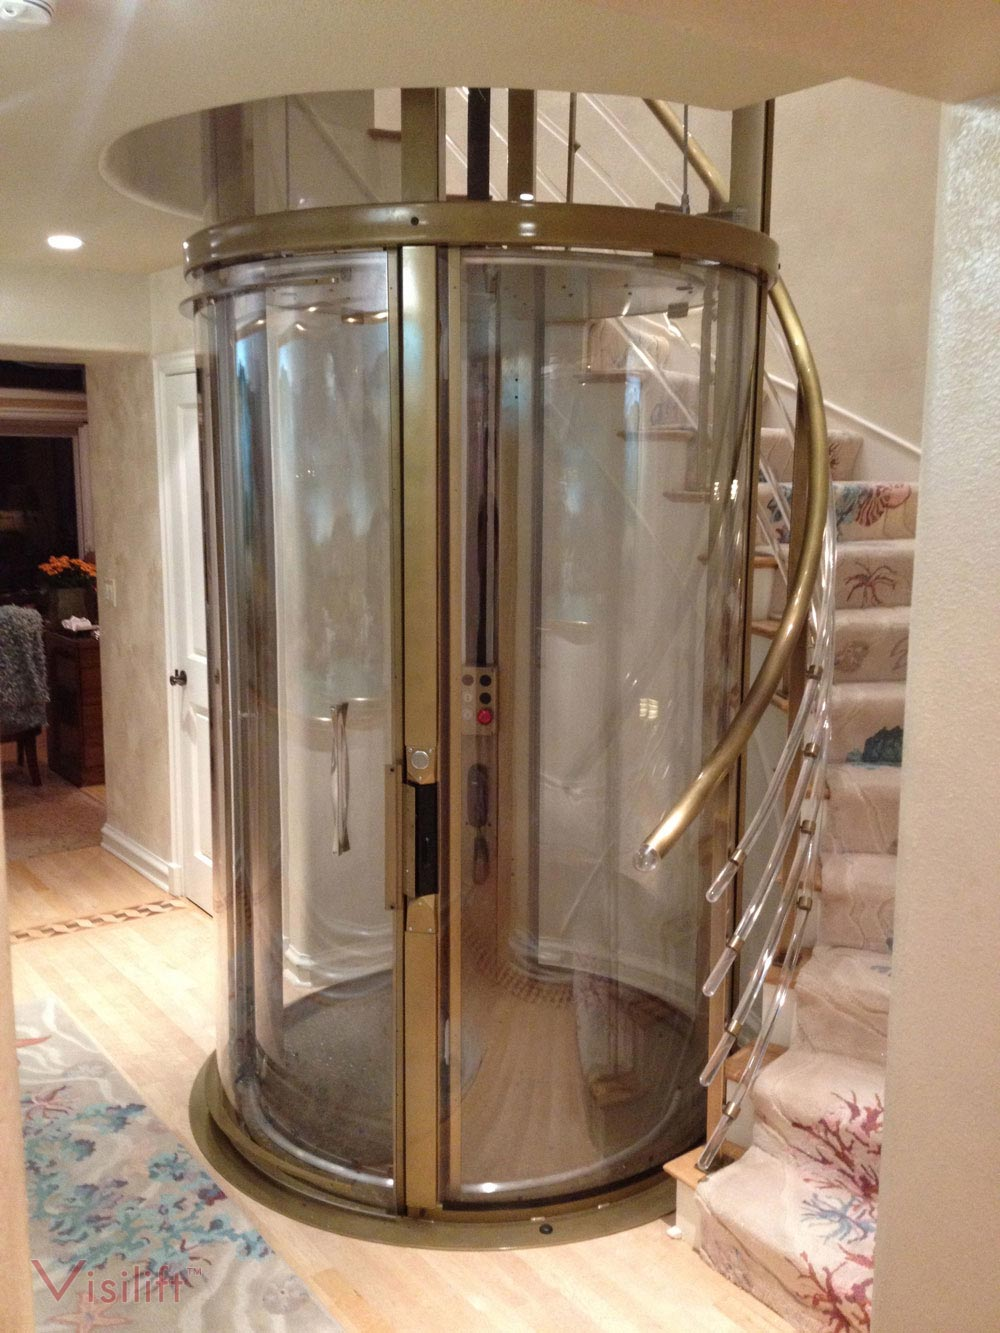 5 Benefits of installing a lift at home  space safety mobility style value